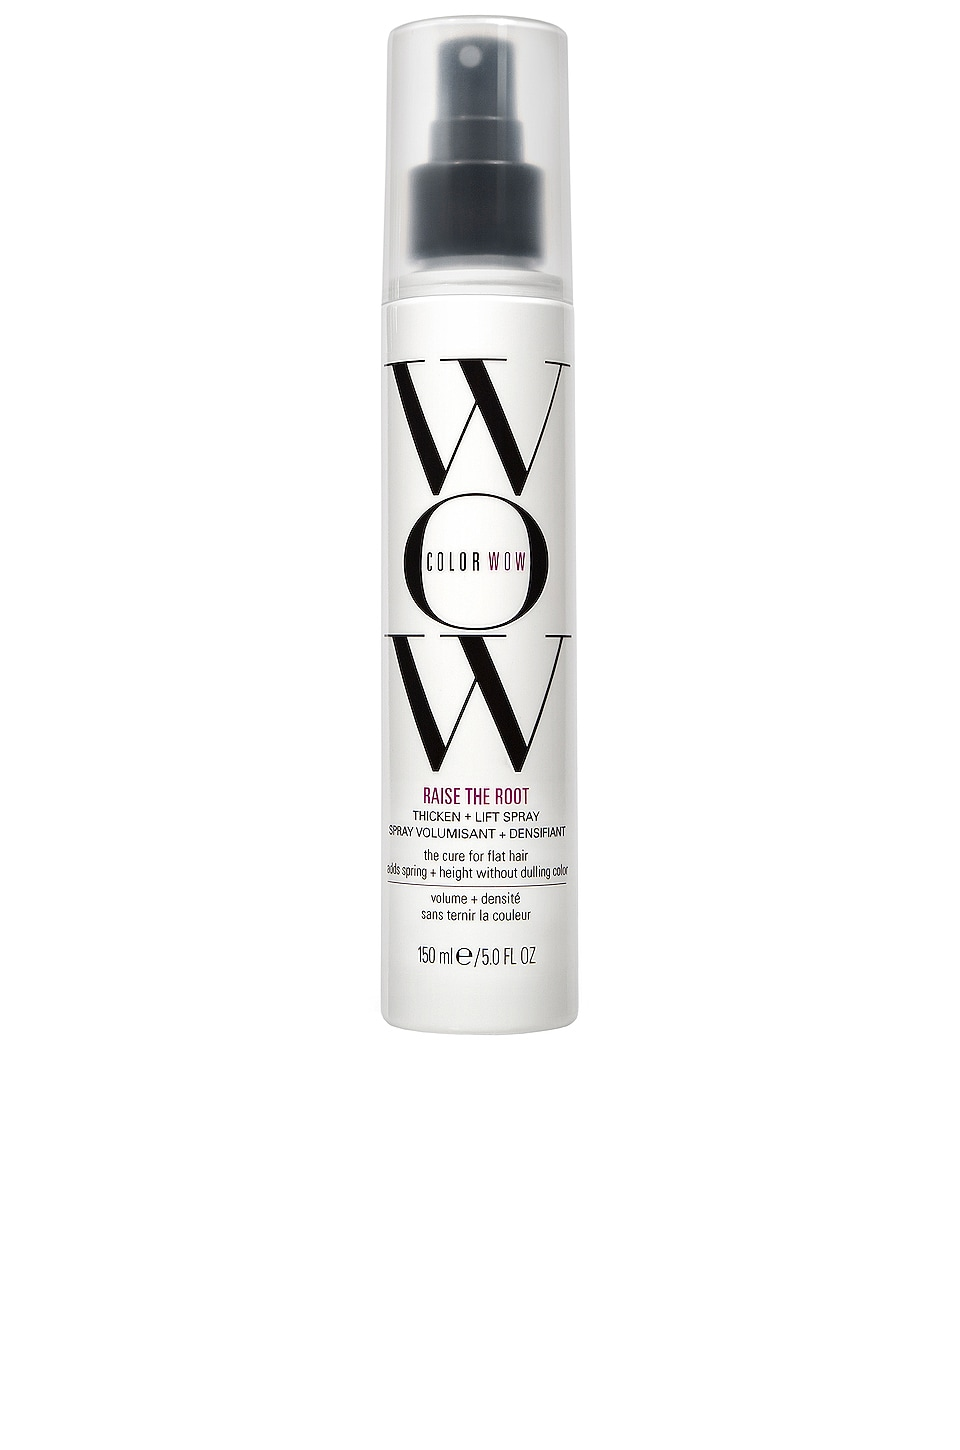 Color WOW PRODUCTO DE MODELADO DEL CABELLO RAISE THE ROOT THICKEN & LIFT